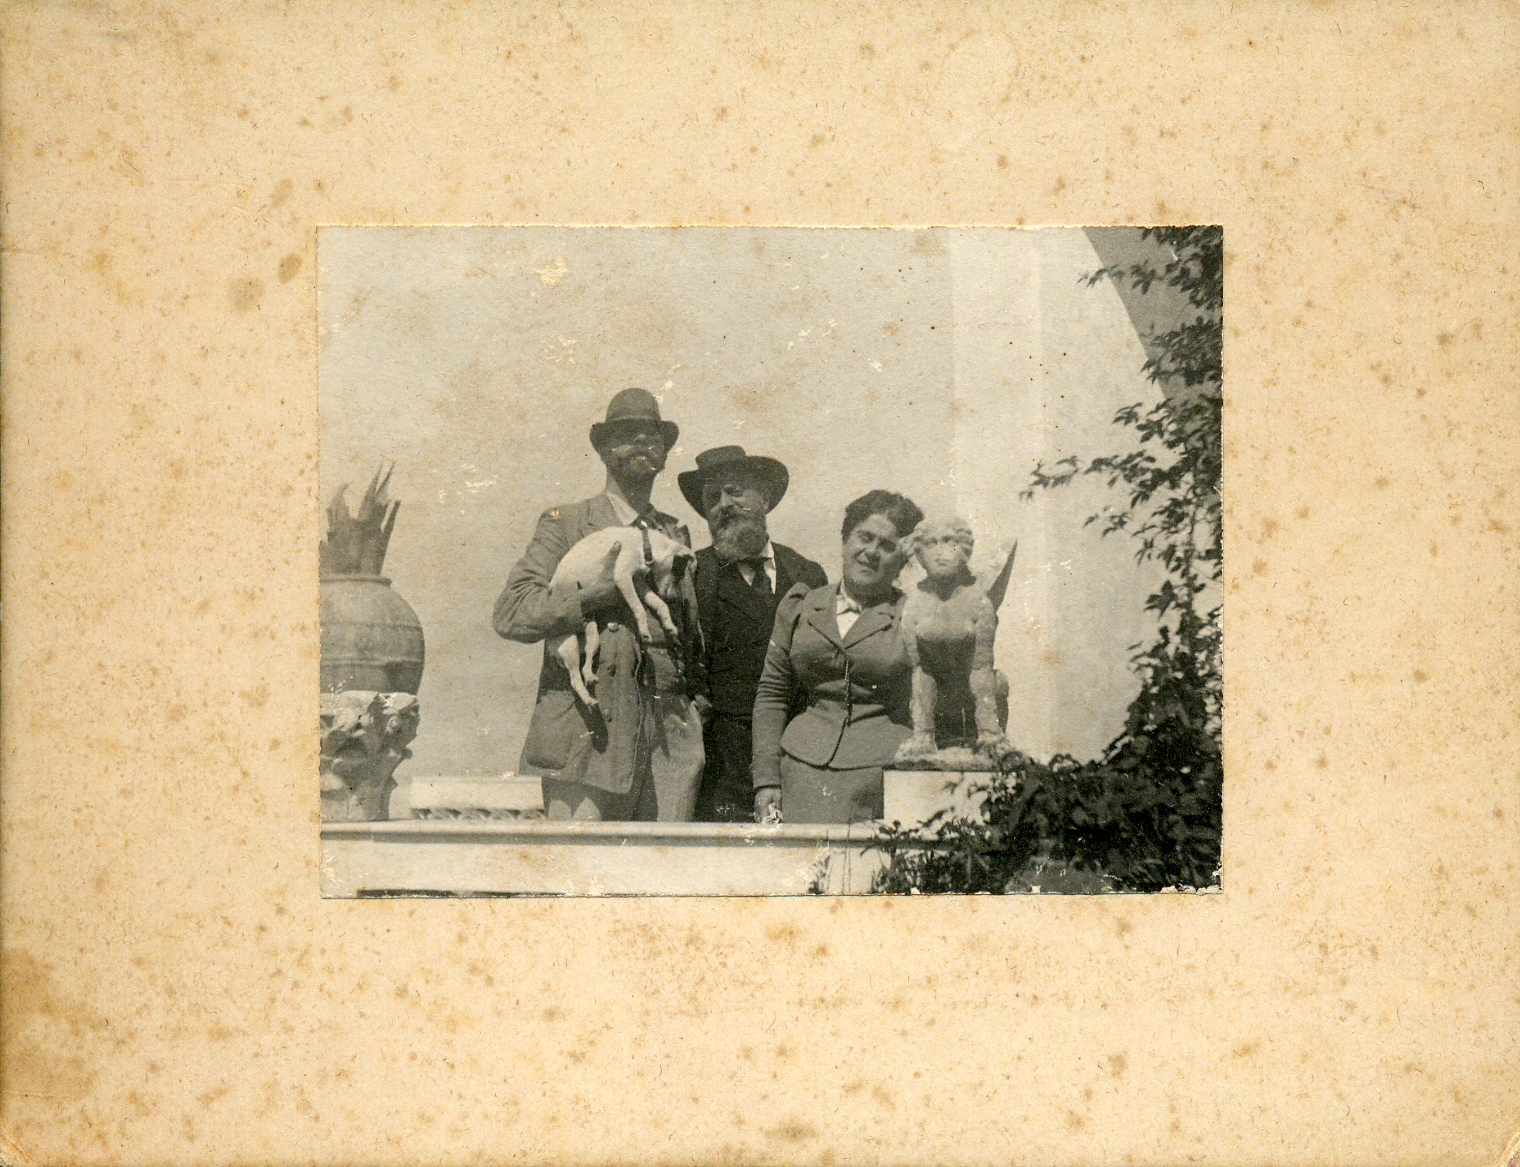 A smiling Munthe with dog and friends at Villa San Michele